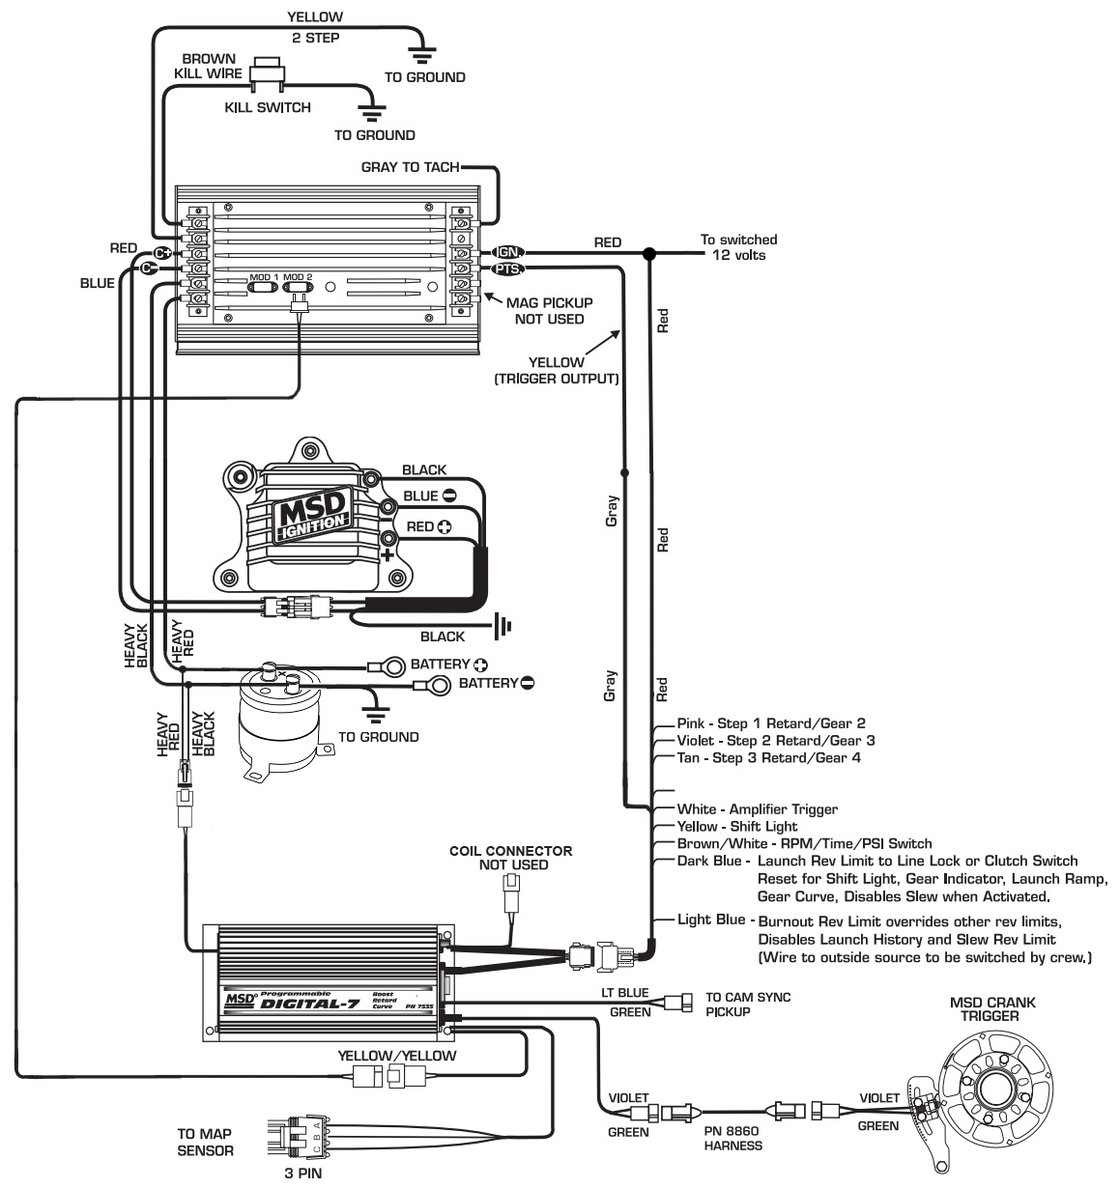 Rpm Gearbox Free Download Wiring Diagrams Pictures Wiring Diagrams